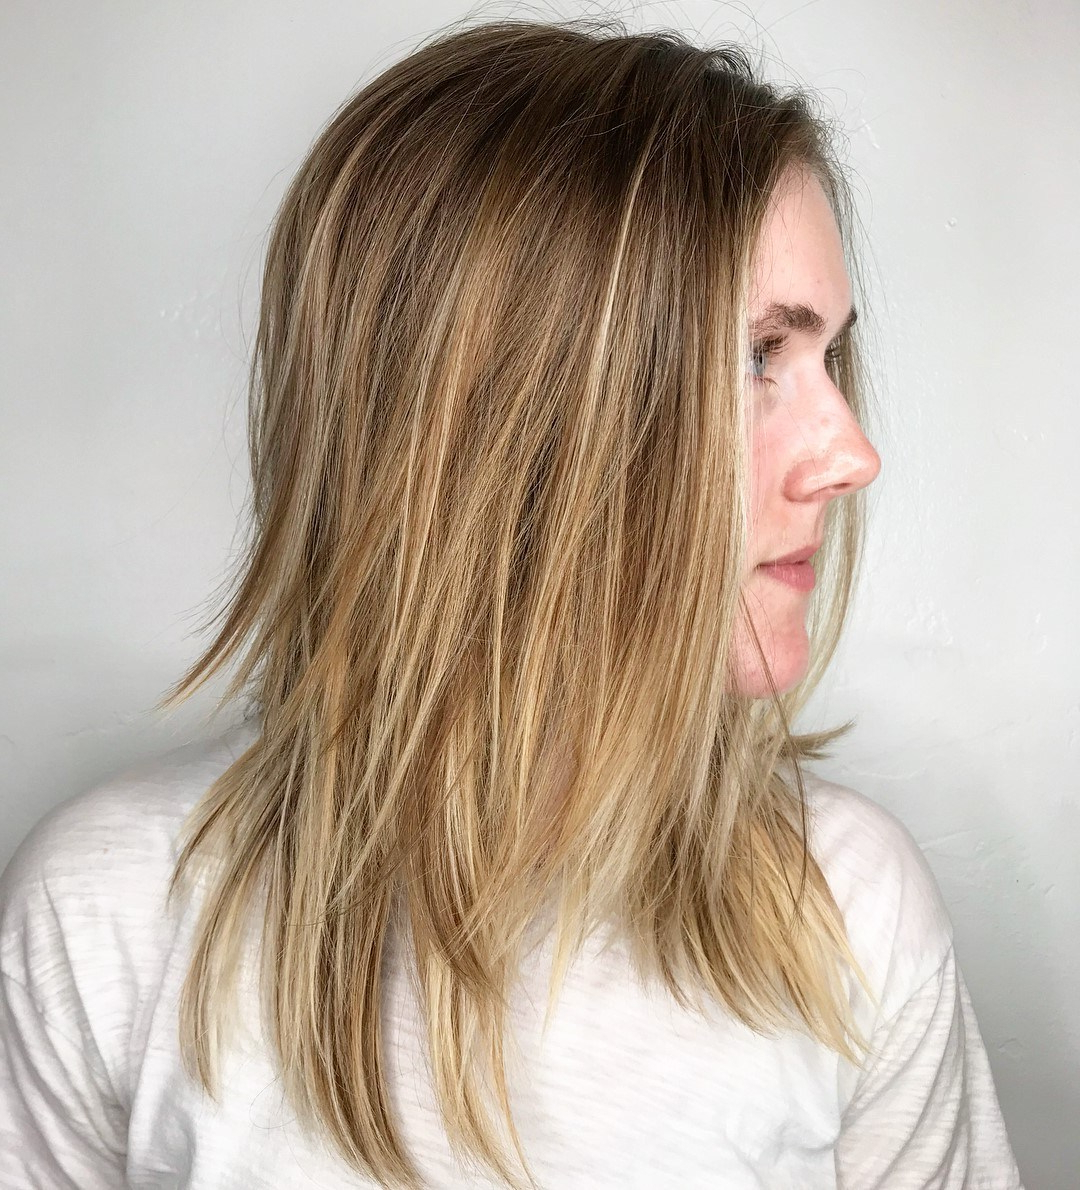 Latest Medium Razored Shag Haircuts For Straight Hair For 22 Modern Shag Haircut For Utter Stylish Look – Haircuts (View 11 of 20)